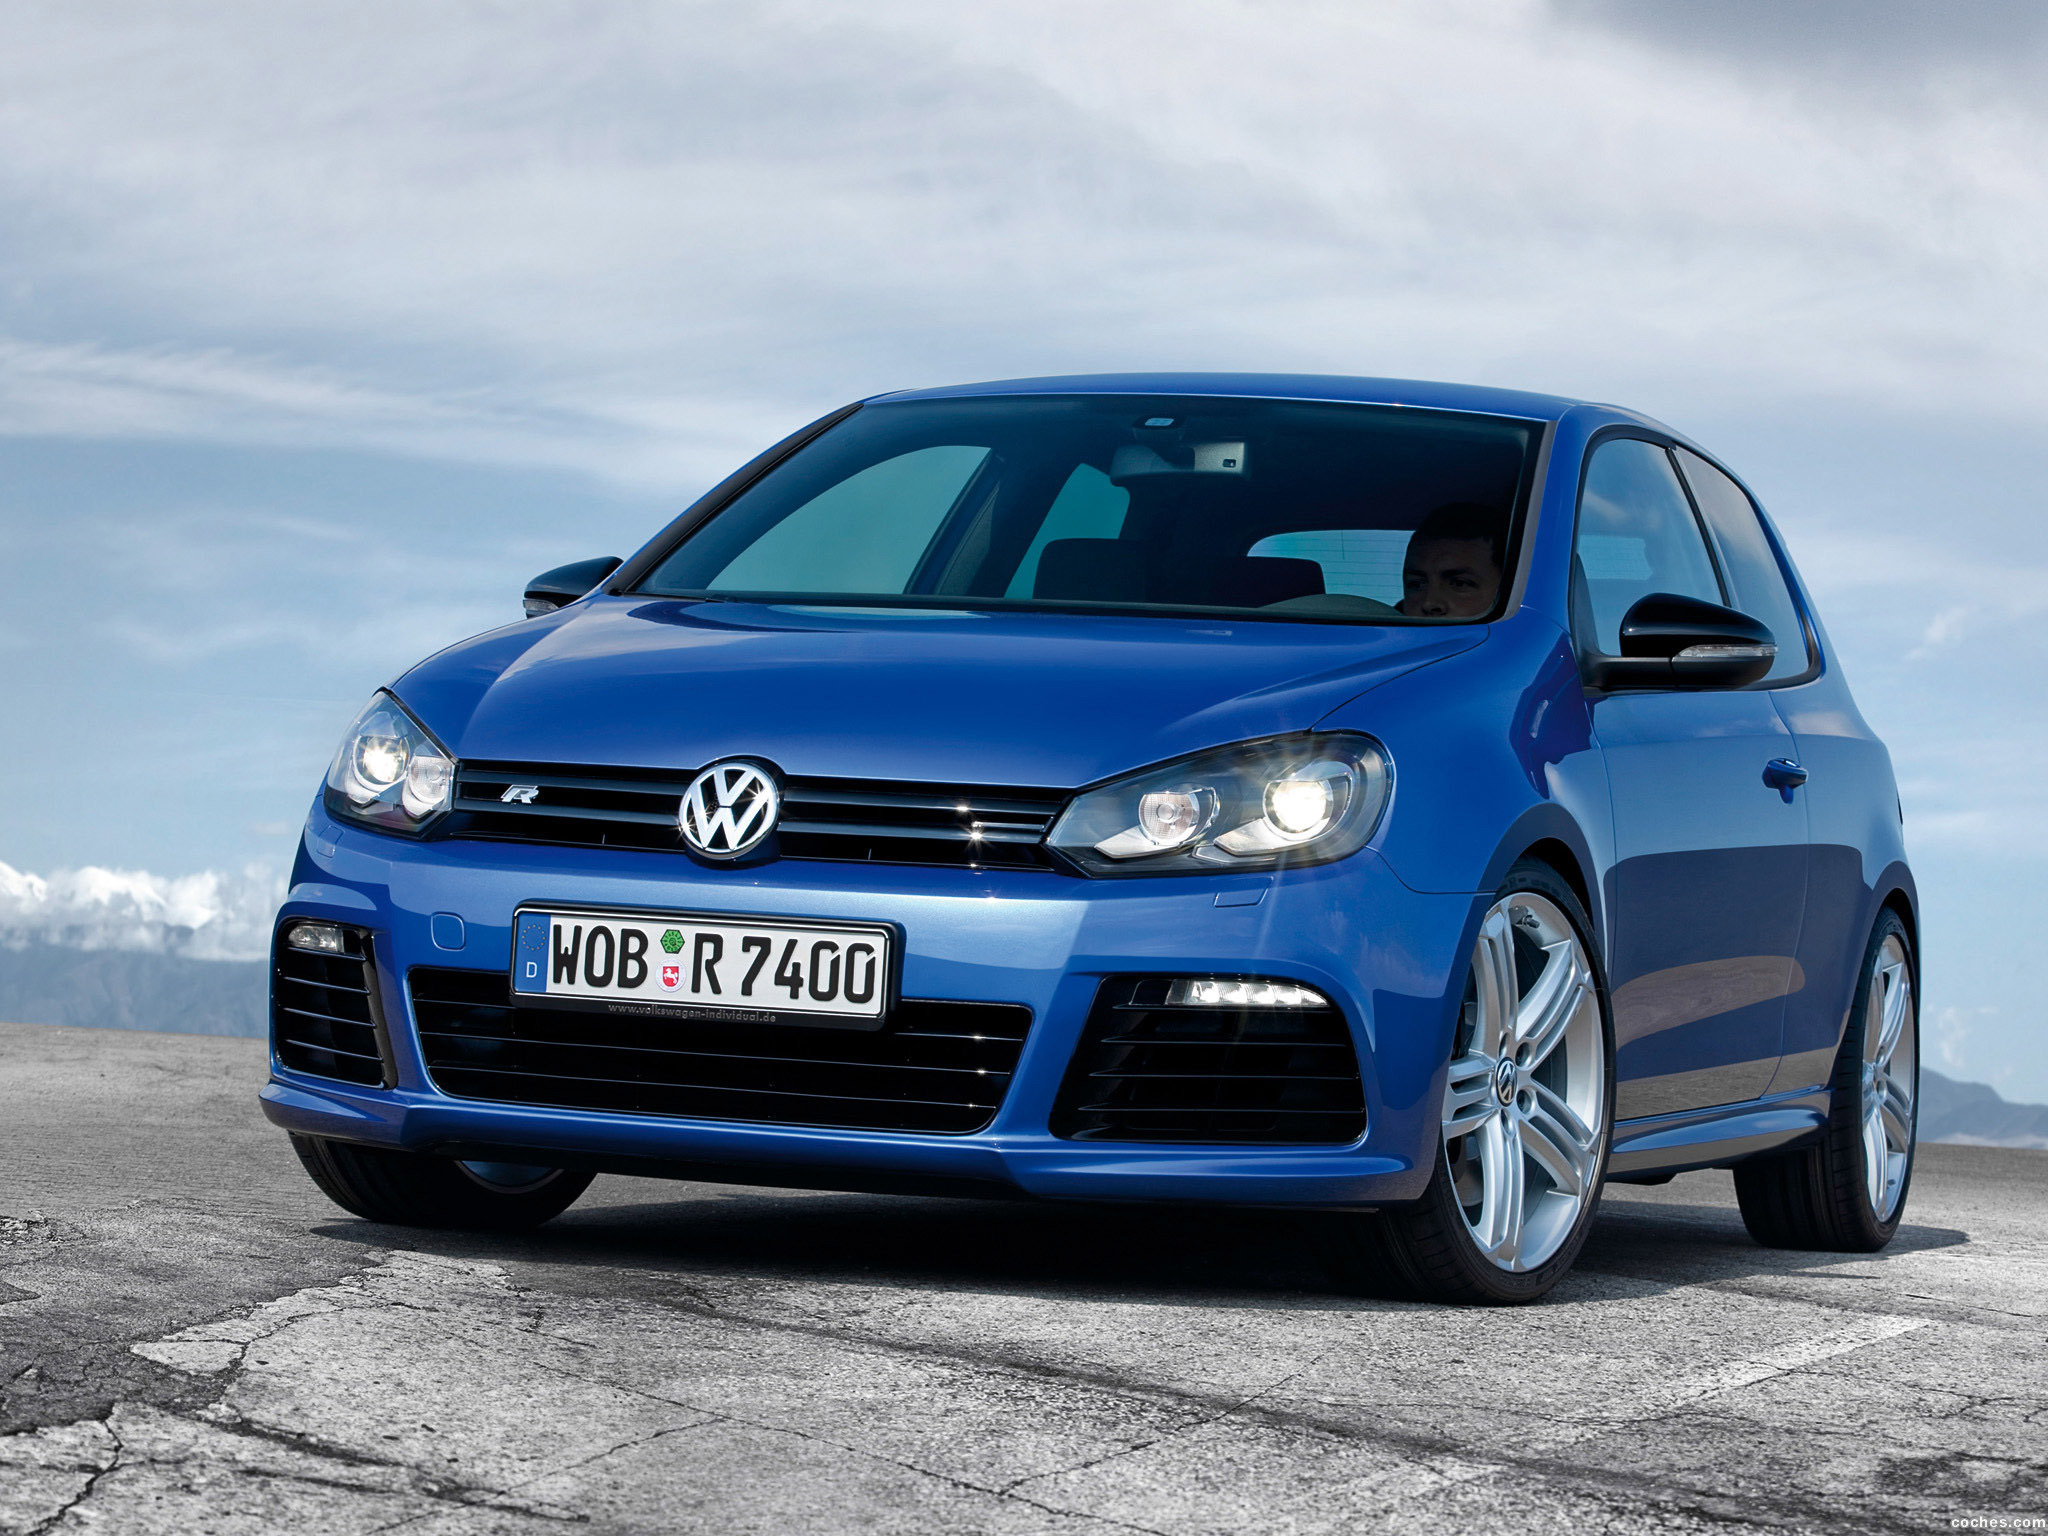 fotos de volkswagen golf vi r 3 puertas 2010. Black Bedroom Furniture Sets. Home Design Ideas